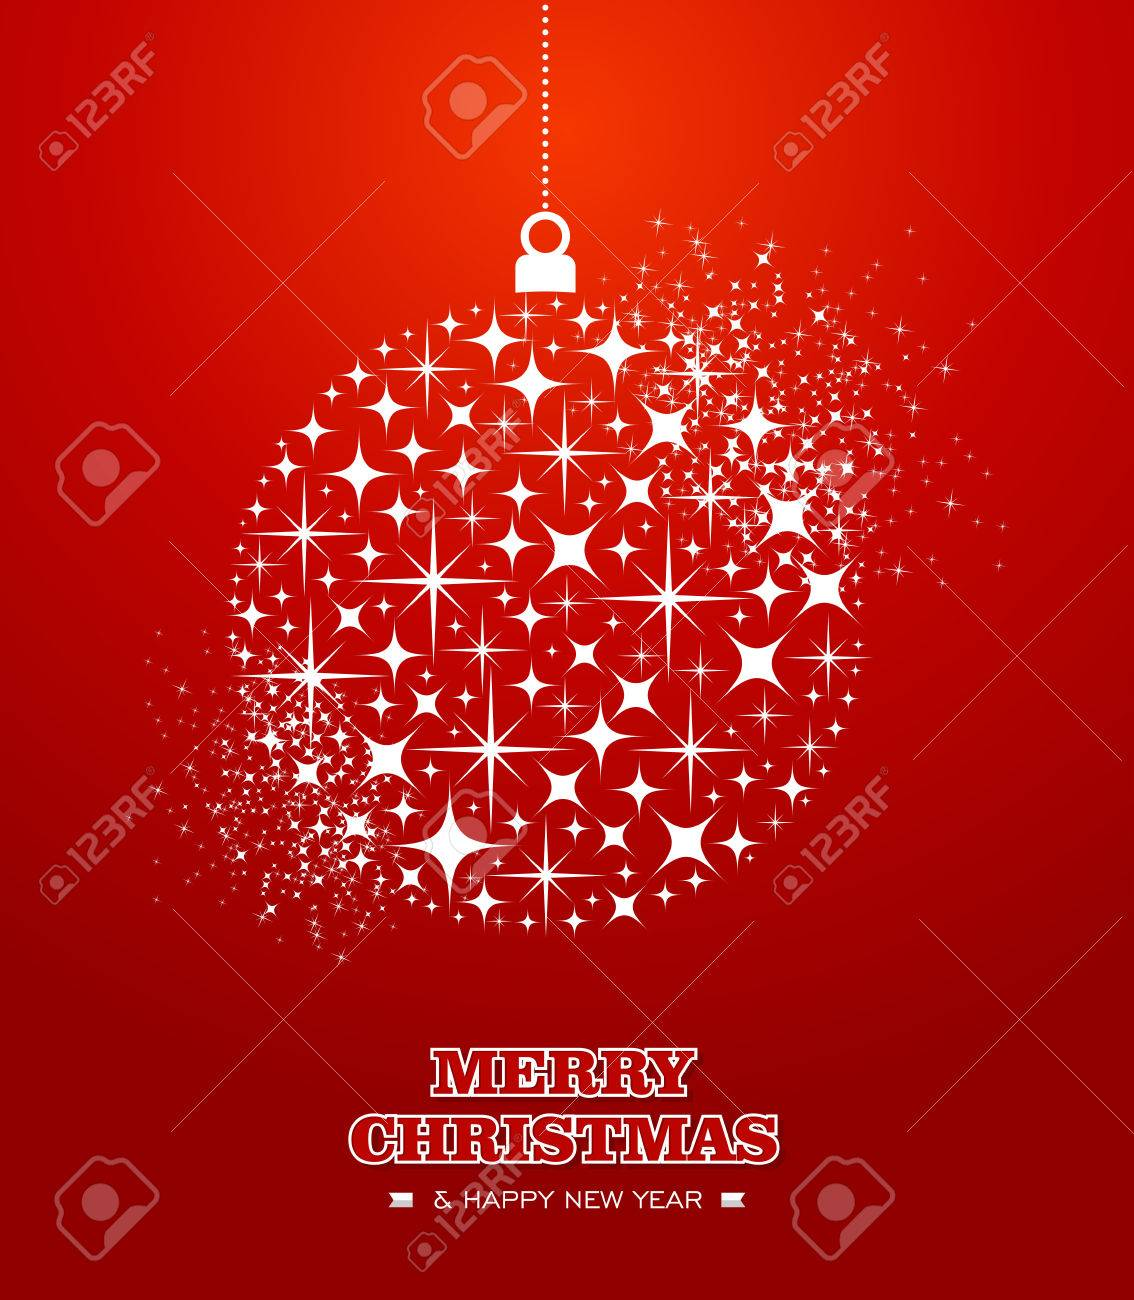 Merry Christmas And Happy New Year 2014 Contemporary Hanging ...